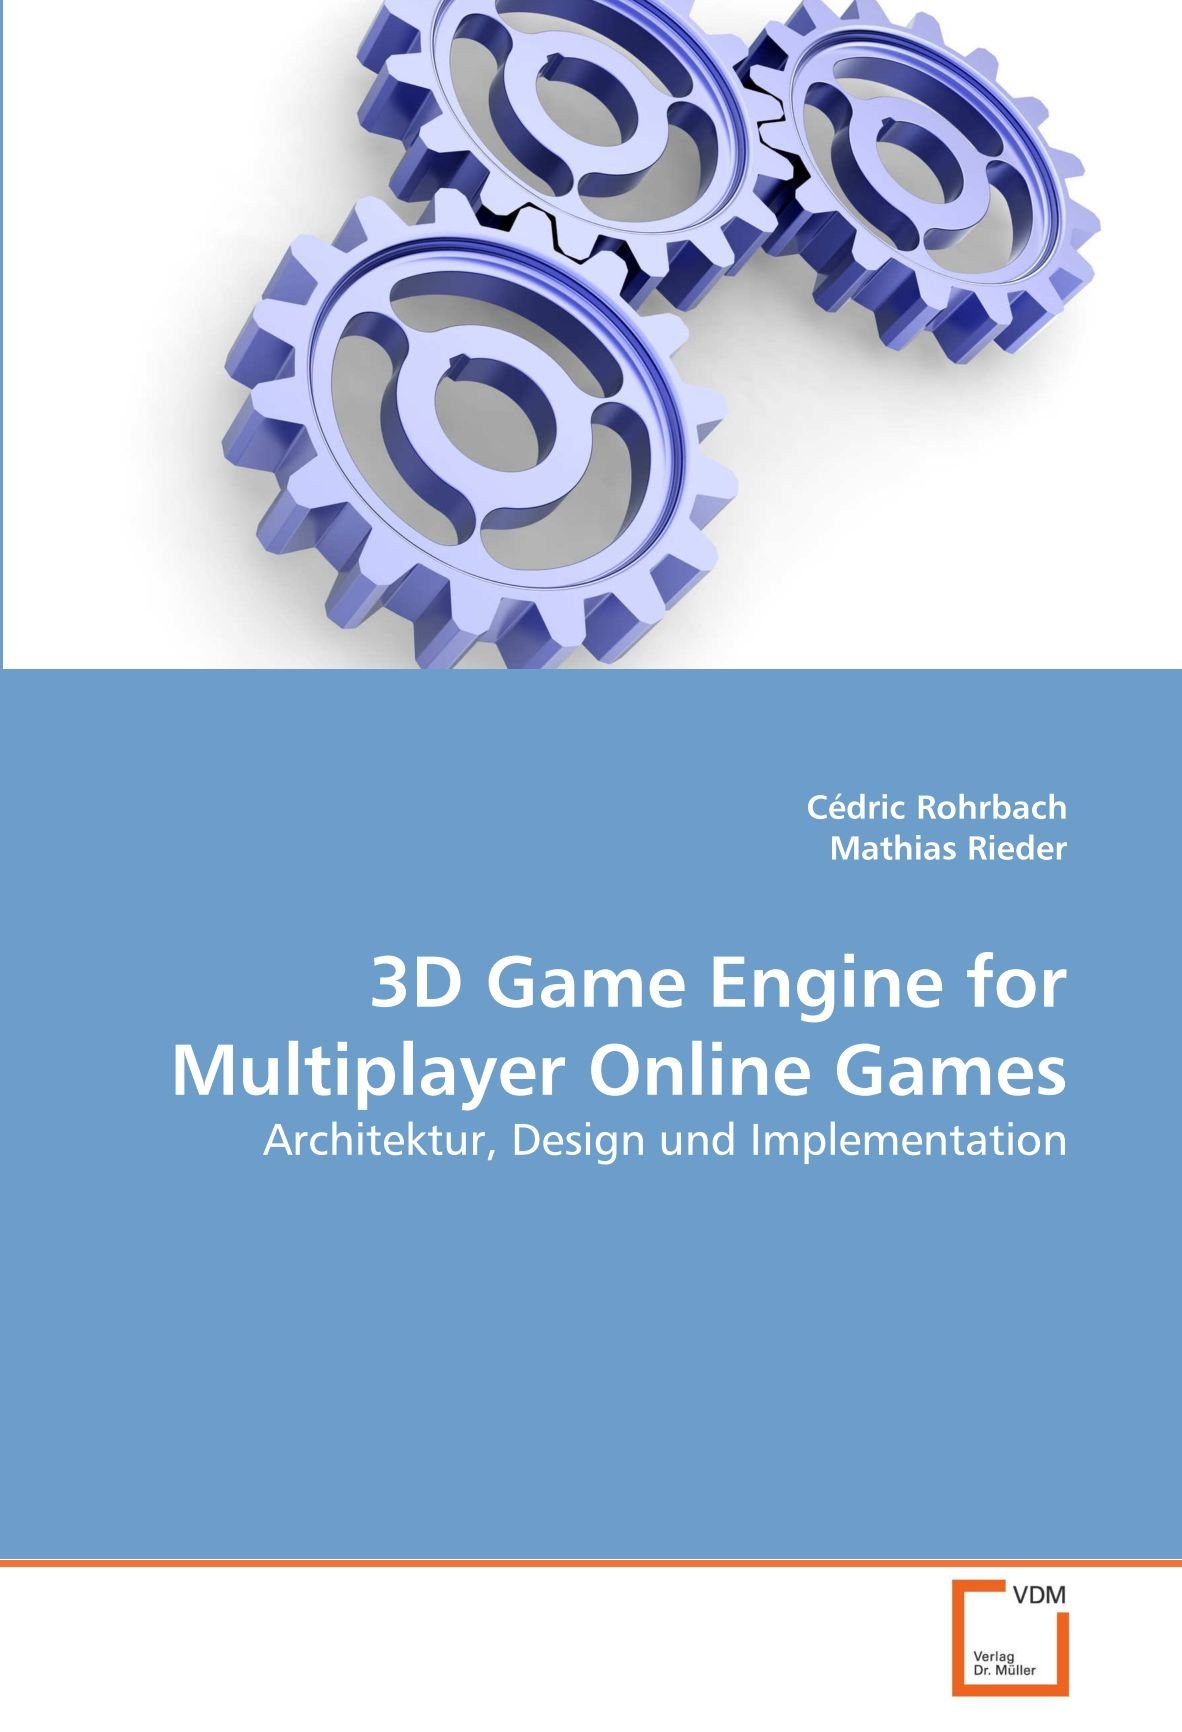 Amazon com: 3D Game Engine for Multiplayer Online Games